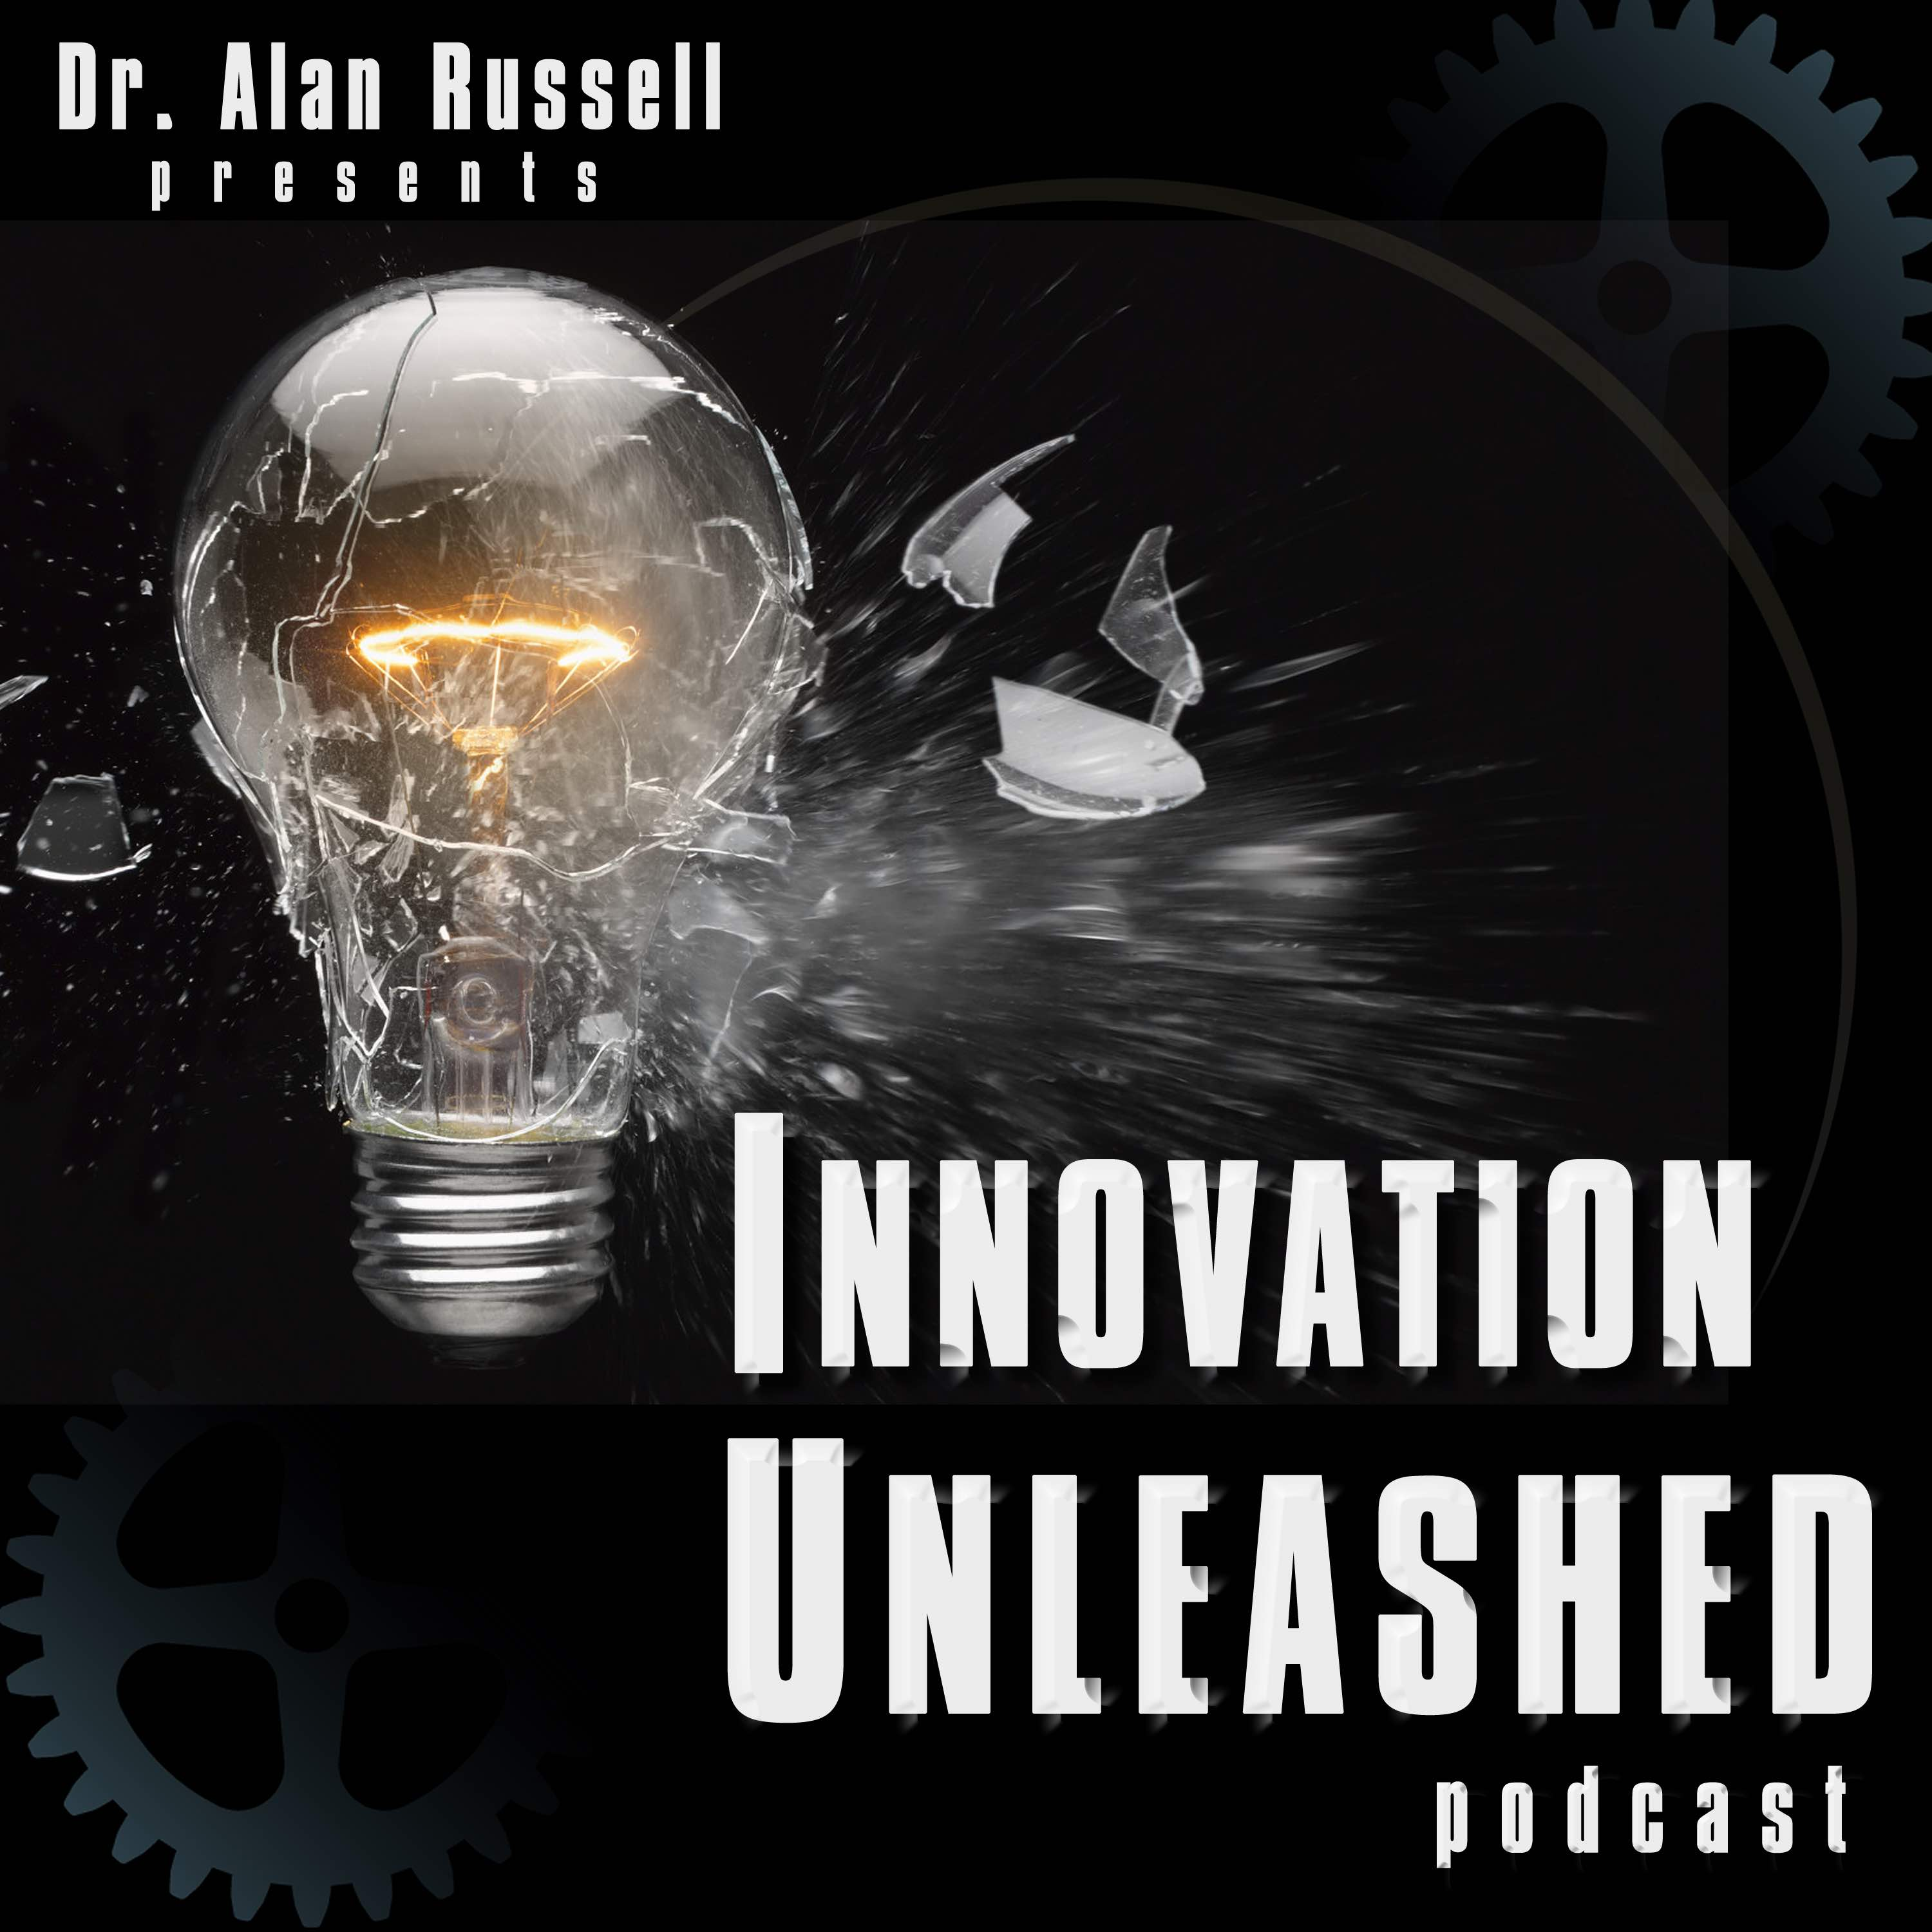 Innovation Unleashed Podcast show art